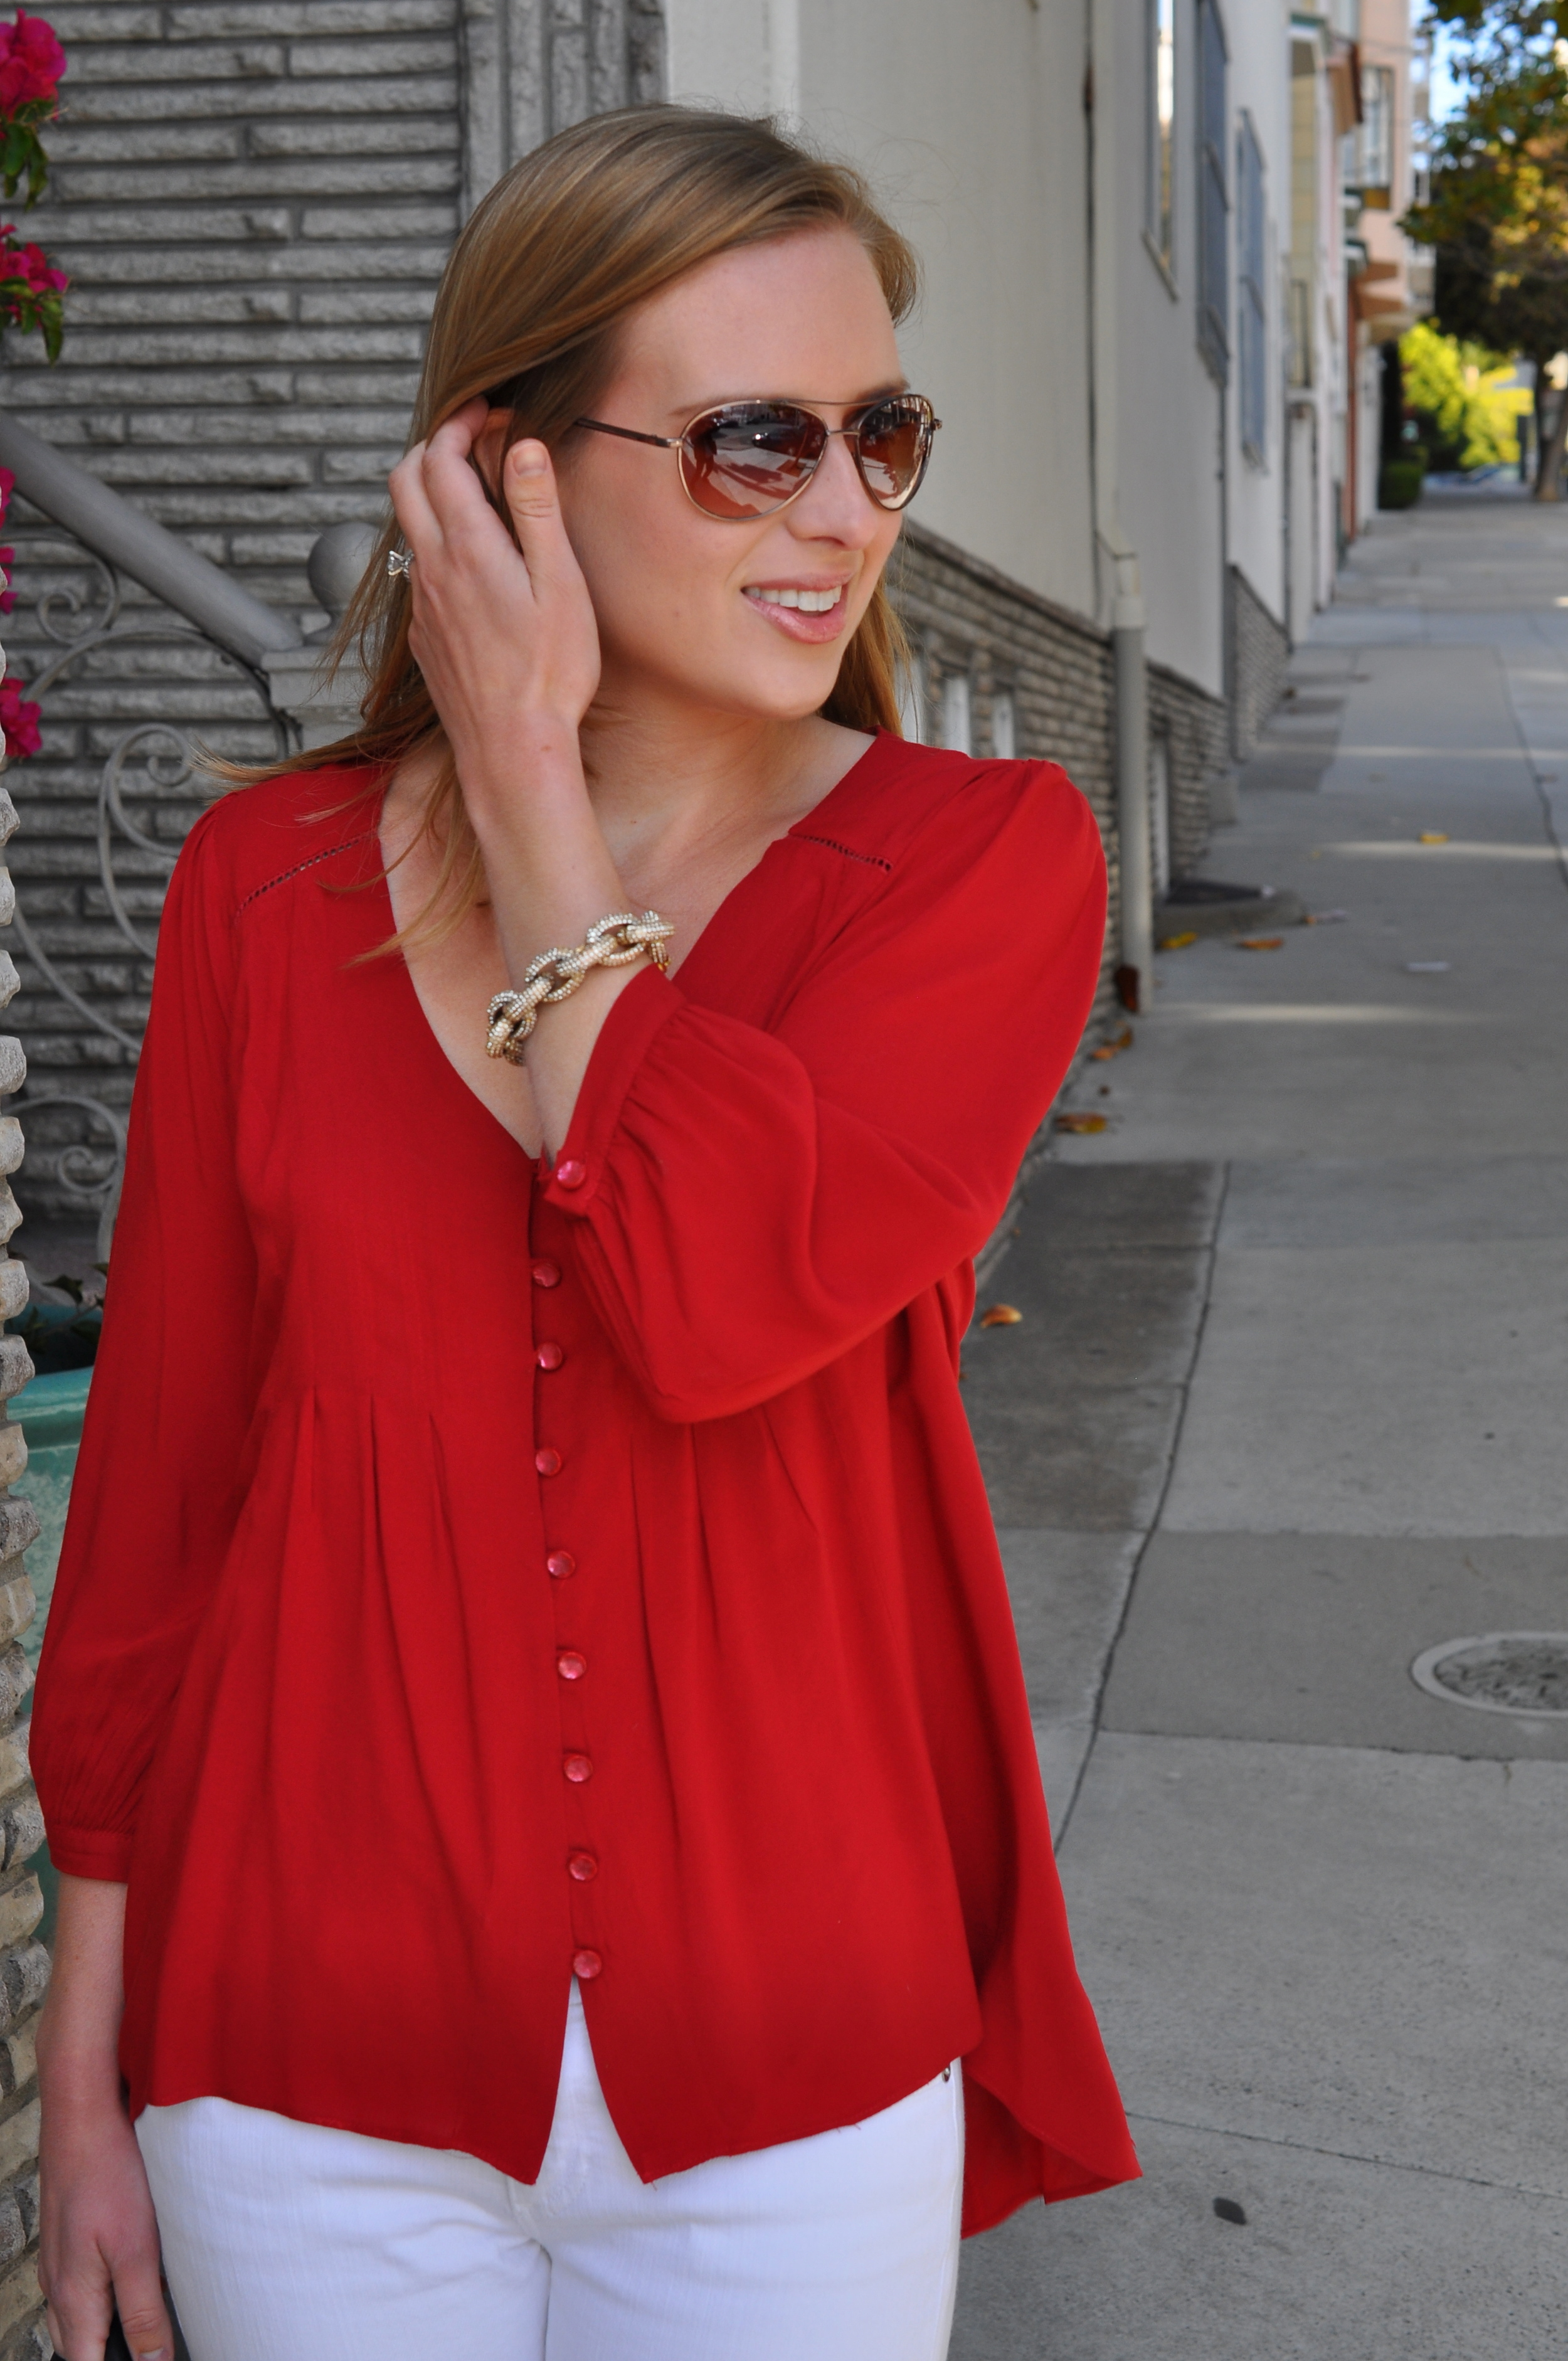 Anthropologie blouse (old), AG jeans, Sam Edelman sandals, J. Crew bracelet, Rebecca Minkoff bag, Anthropologie sunglasses